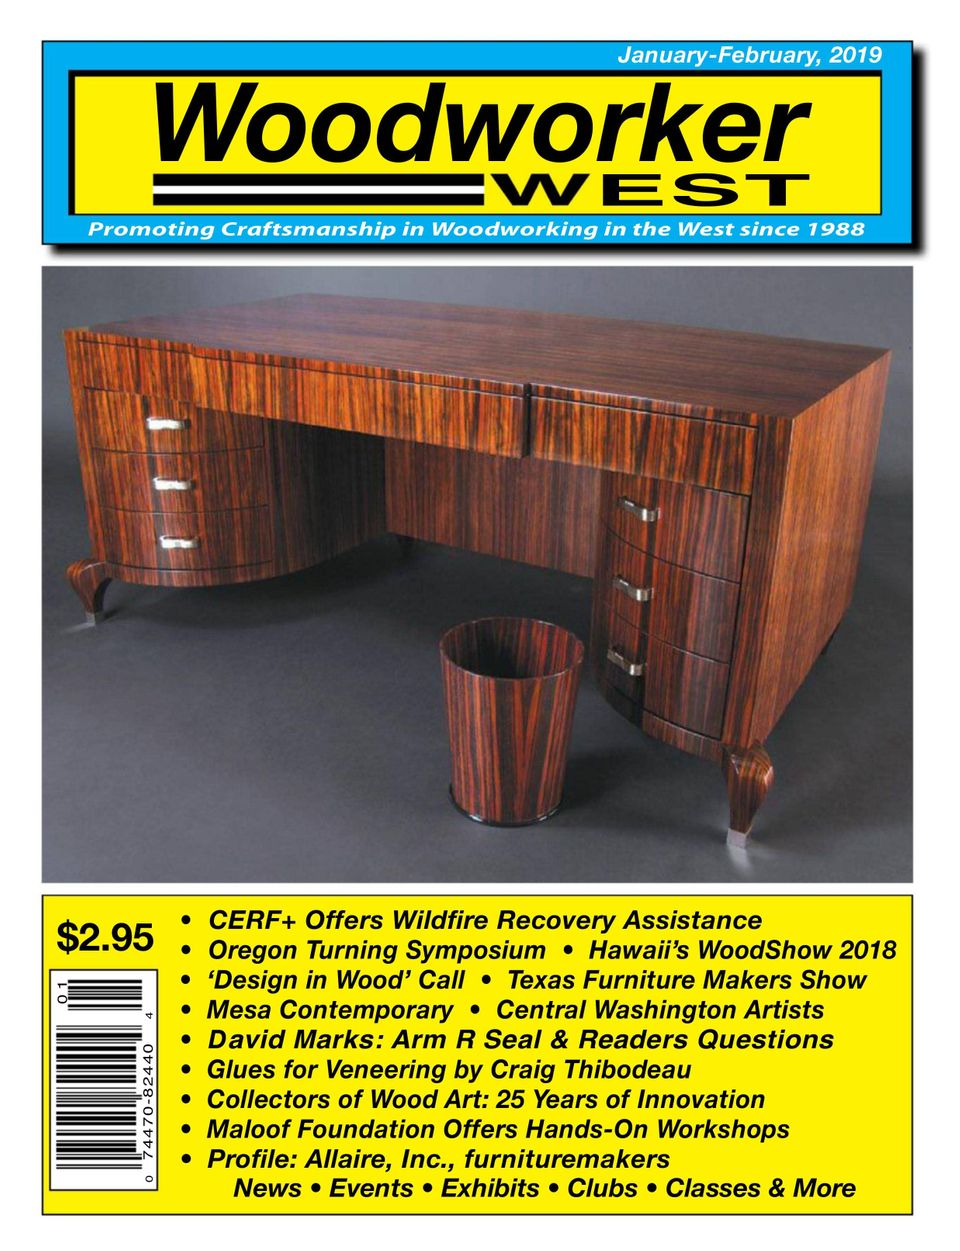 Get Your Digital Copy Of Woodworker West January February 2019 Issue